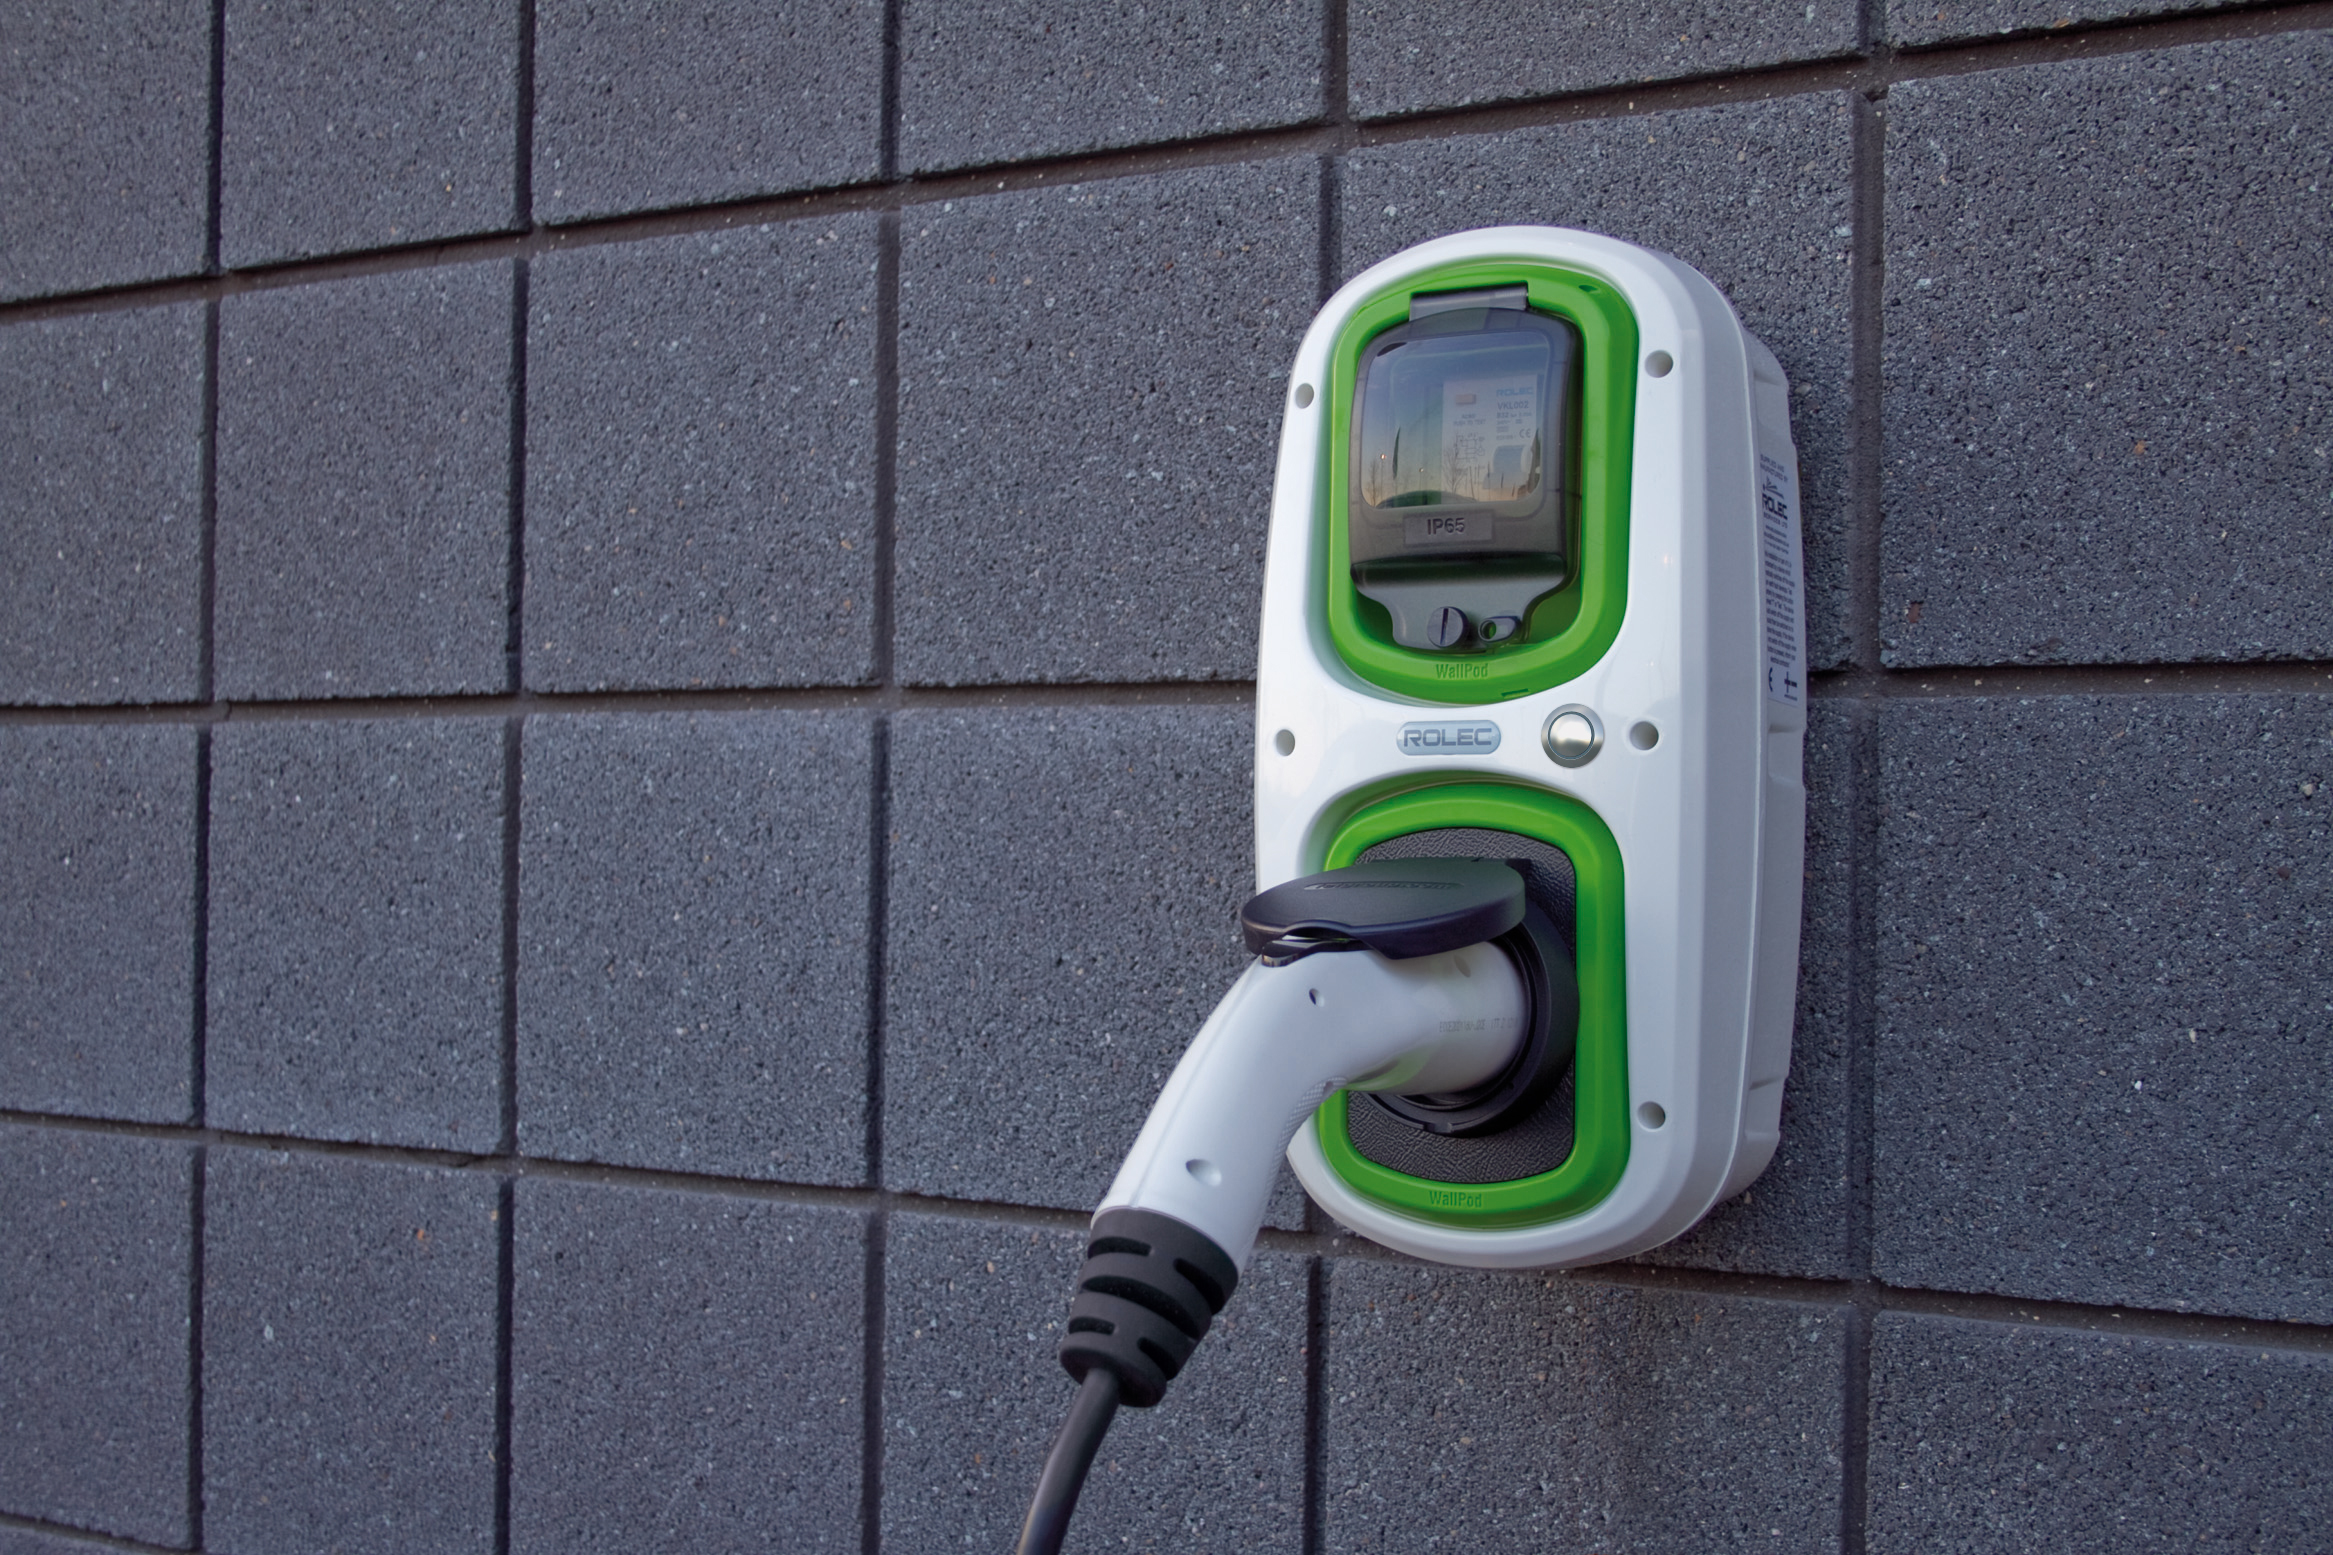 commercialcharge, wallpod, business, commercial, green